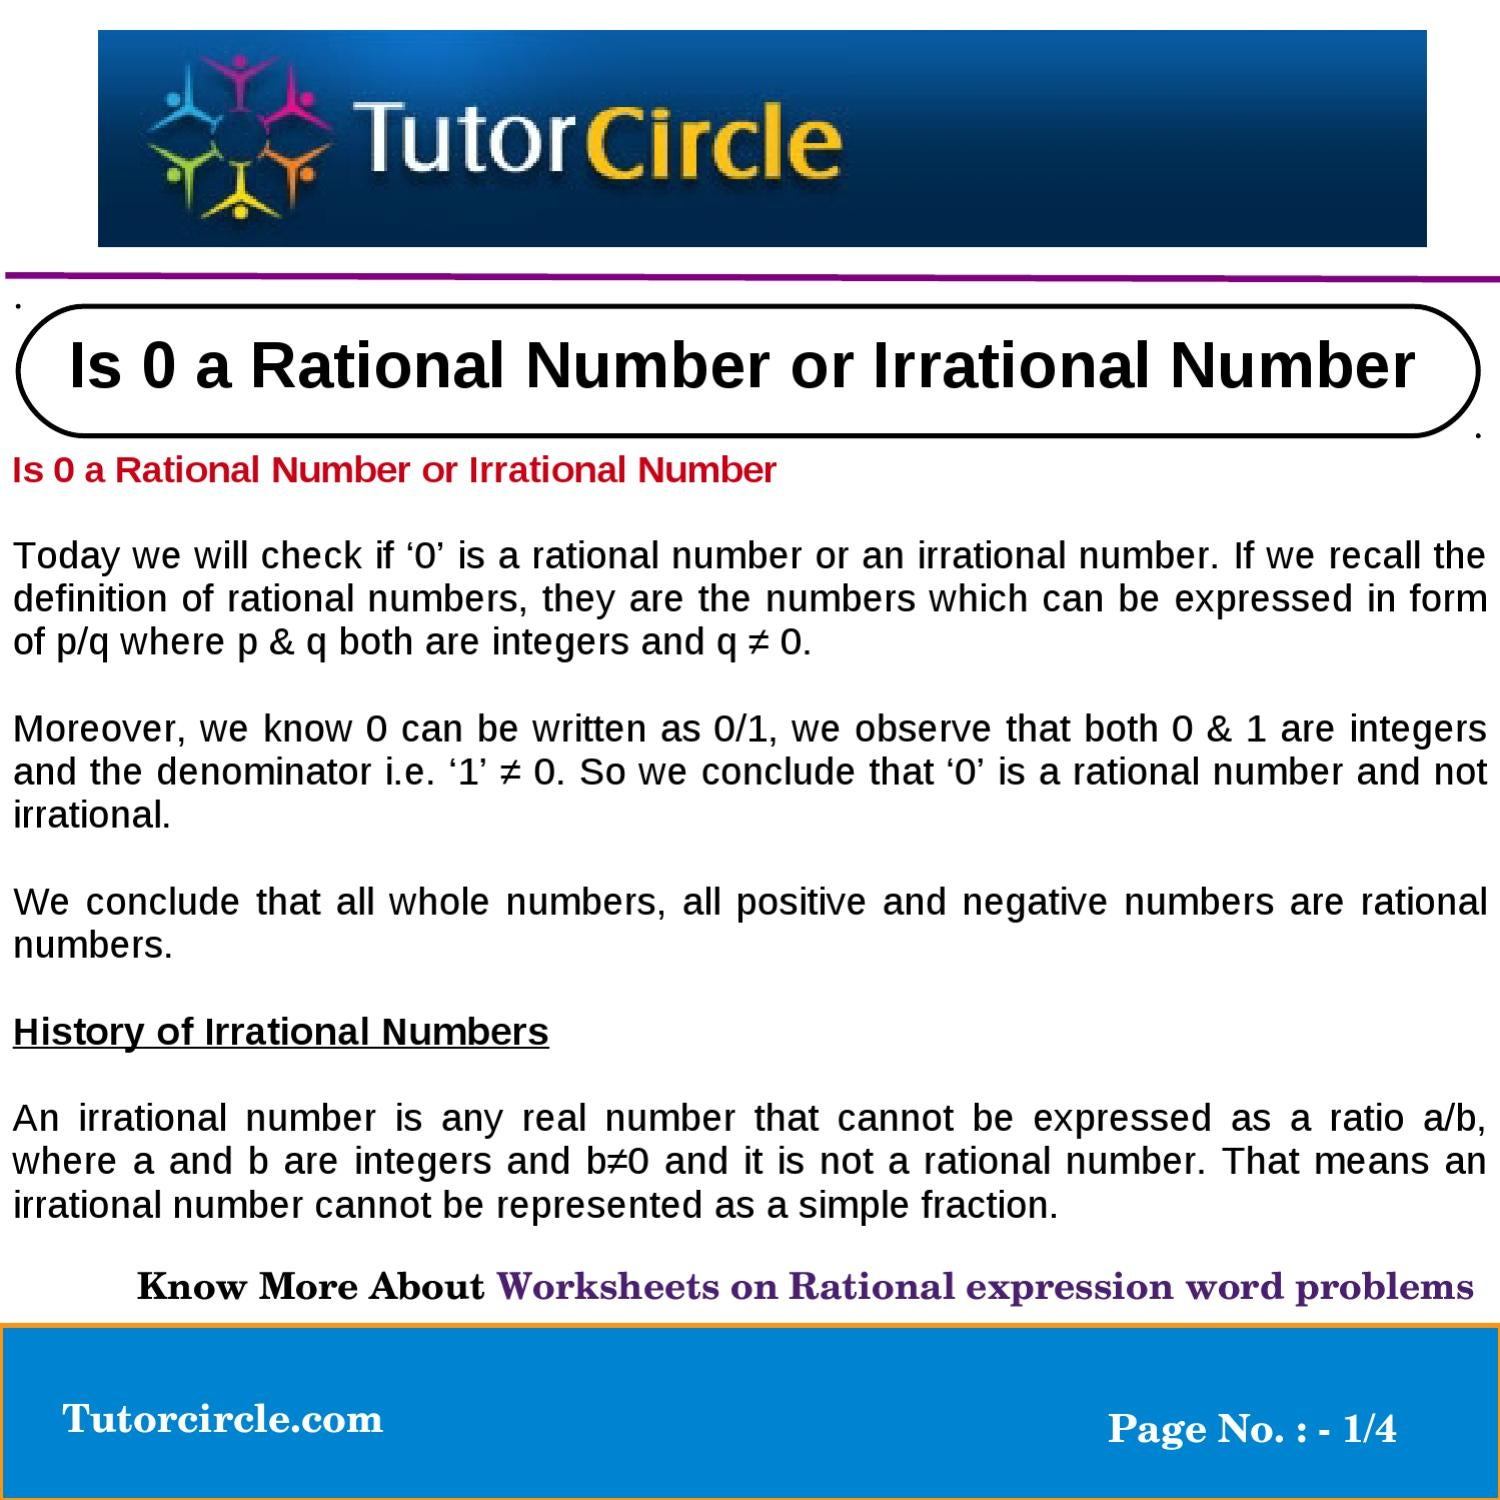 Is 0 a Rational Number or Irrational Number by tutorcircle ...